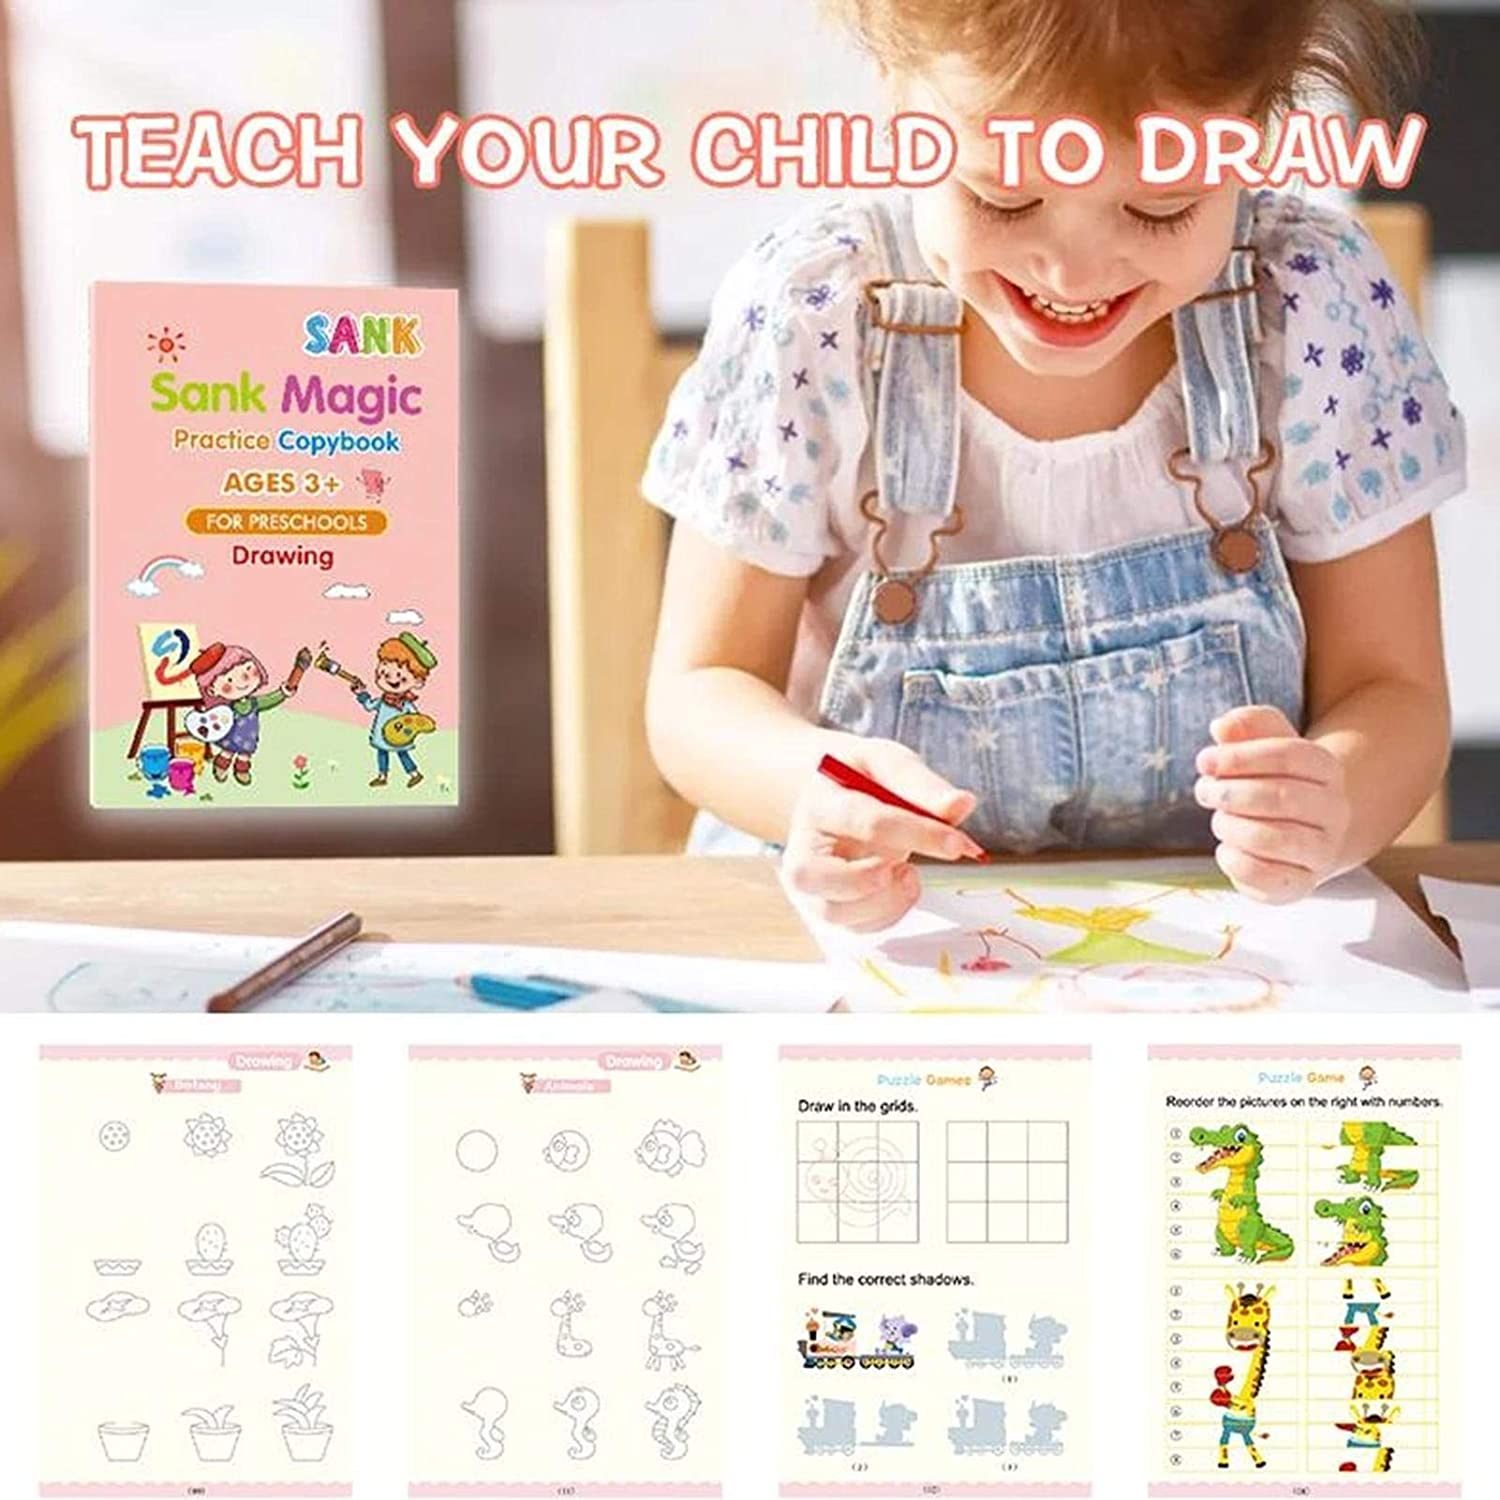 Copybook Set Practical Reusable Writing Tool Homeschool Kindergarteners for Age 3-5 Calligraphy Simple Hand Lettering Luermeuk Magic Practice Copybook,Number Tracing Book for Preschoolers with Pen